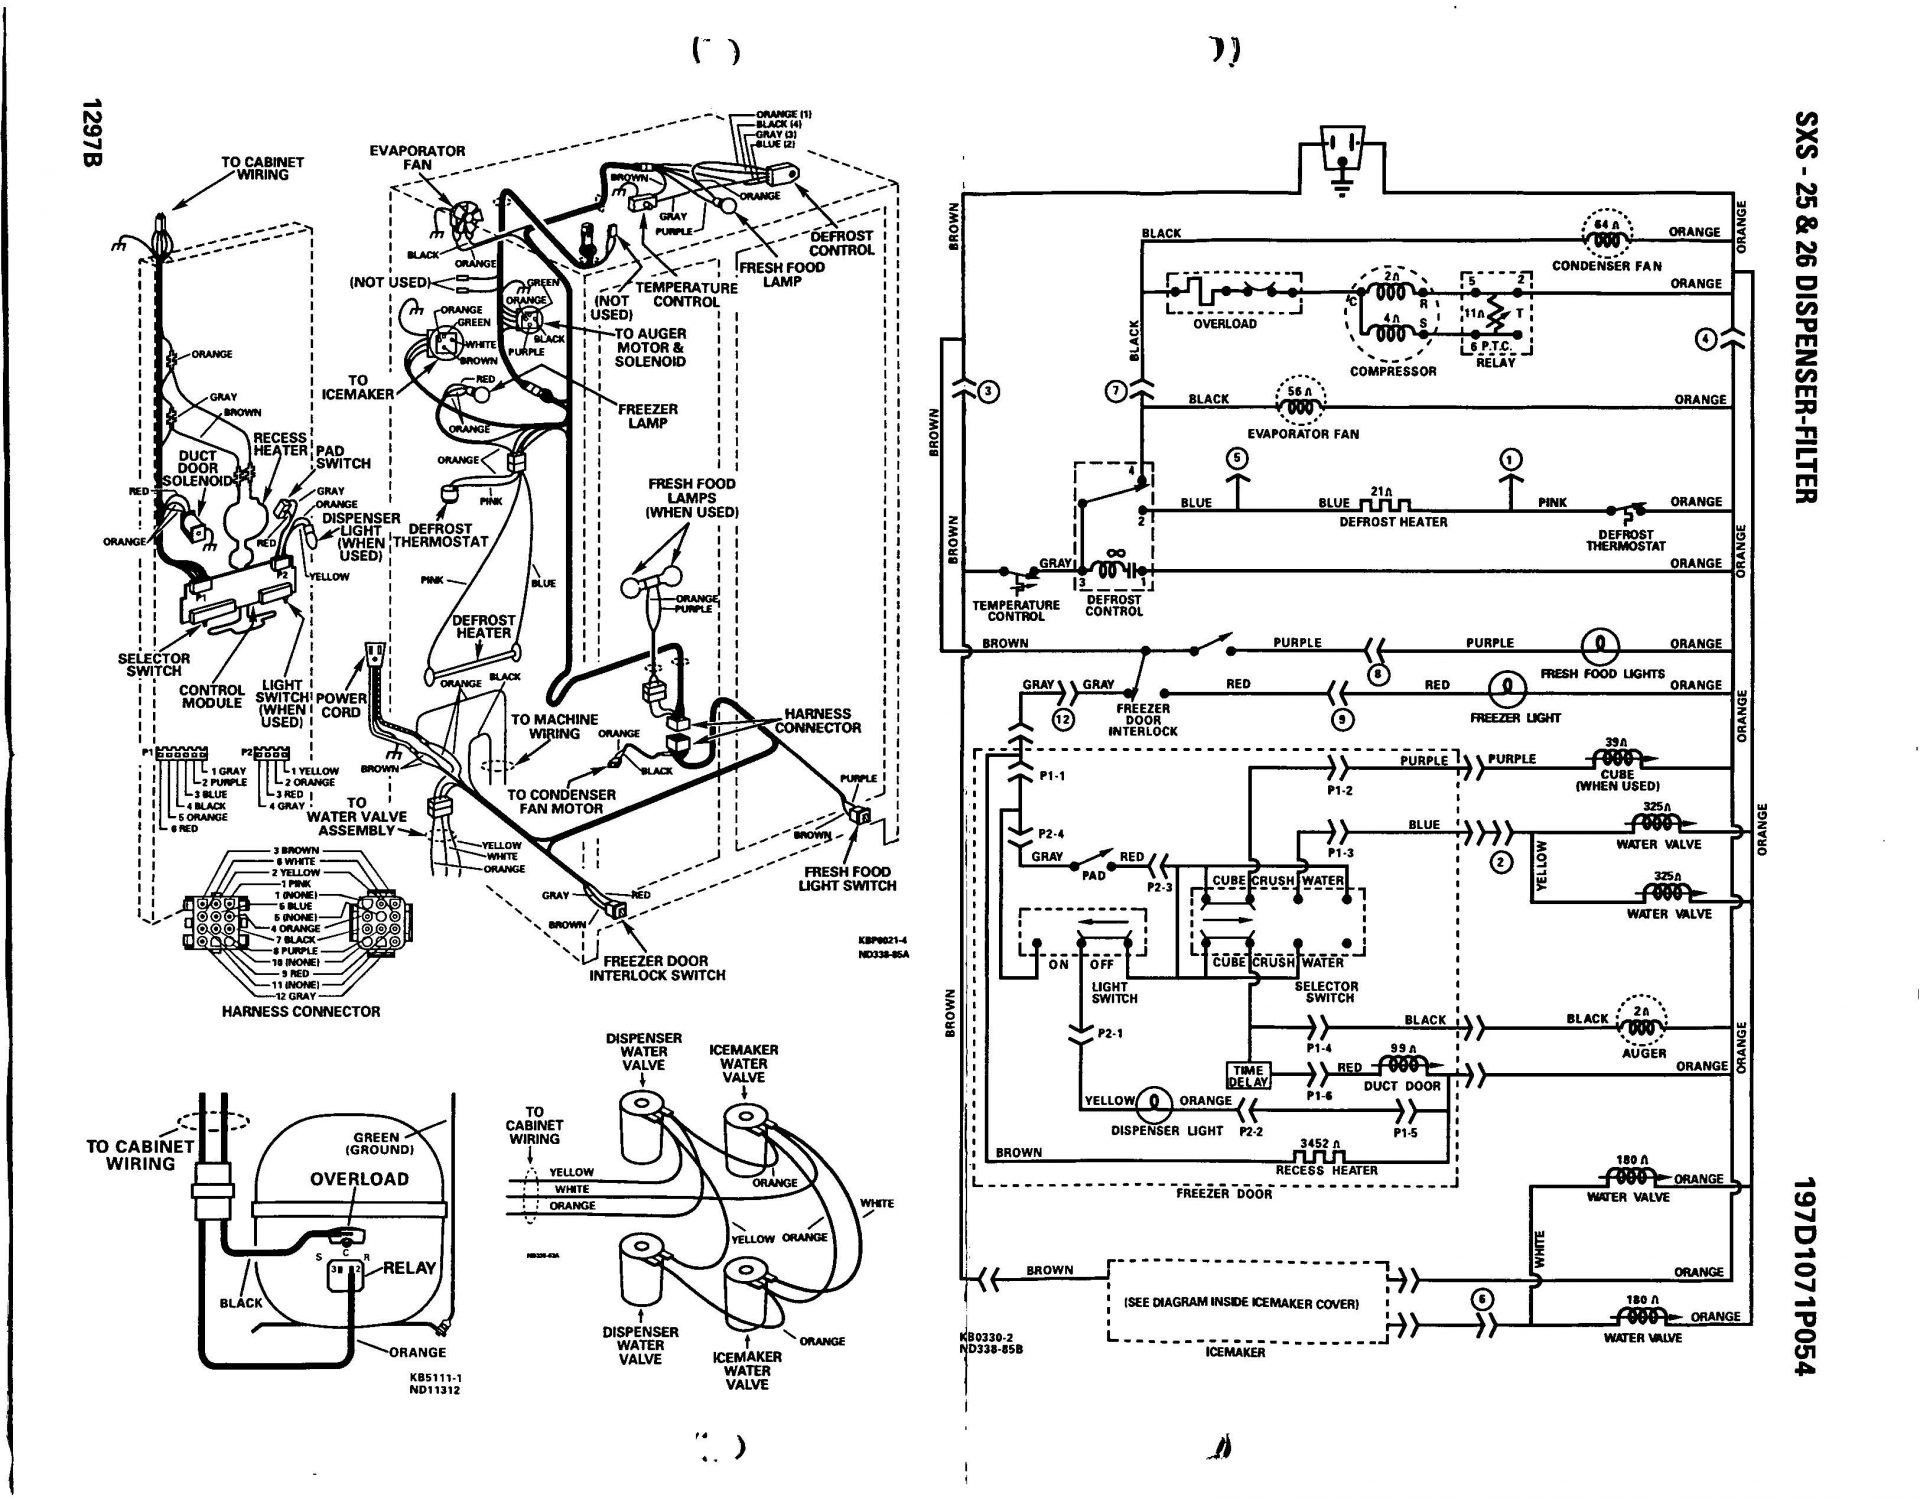 Cooling System Diagram Fridge Wire Diagram Wiring Data Of Cooling System Diagram